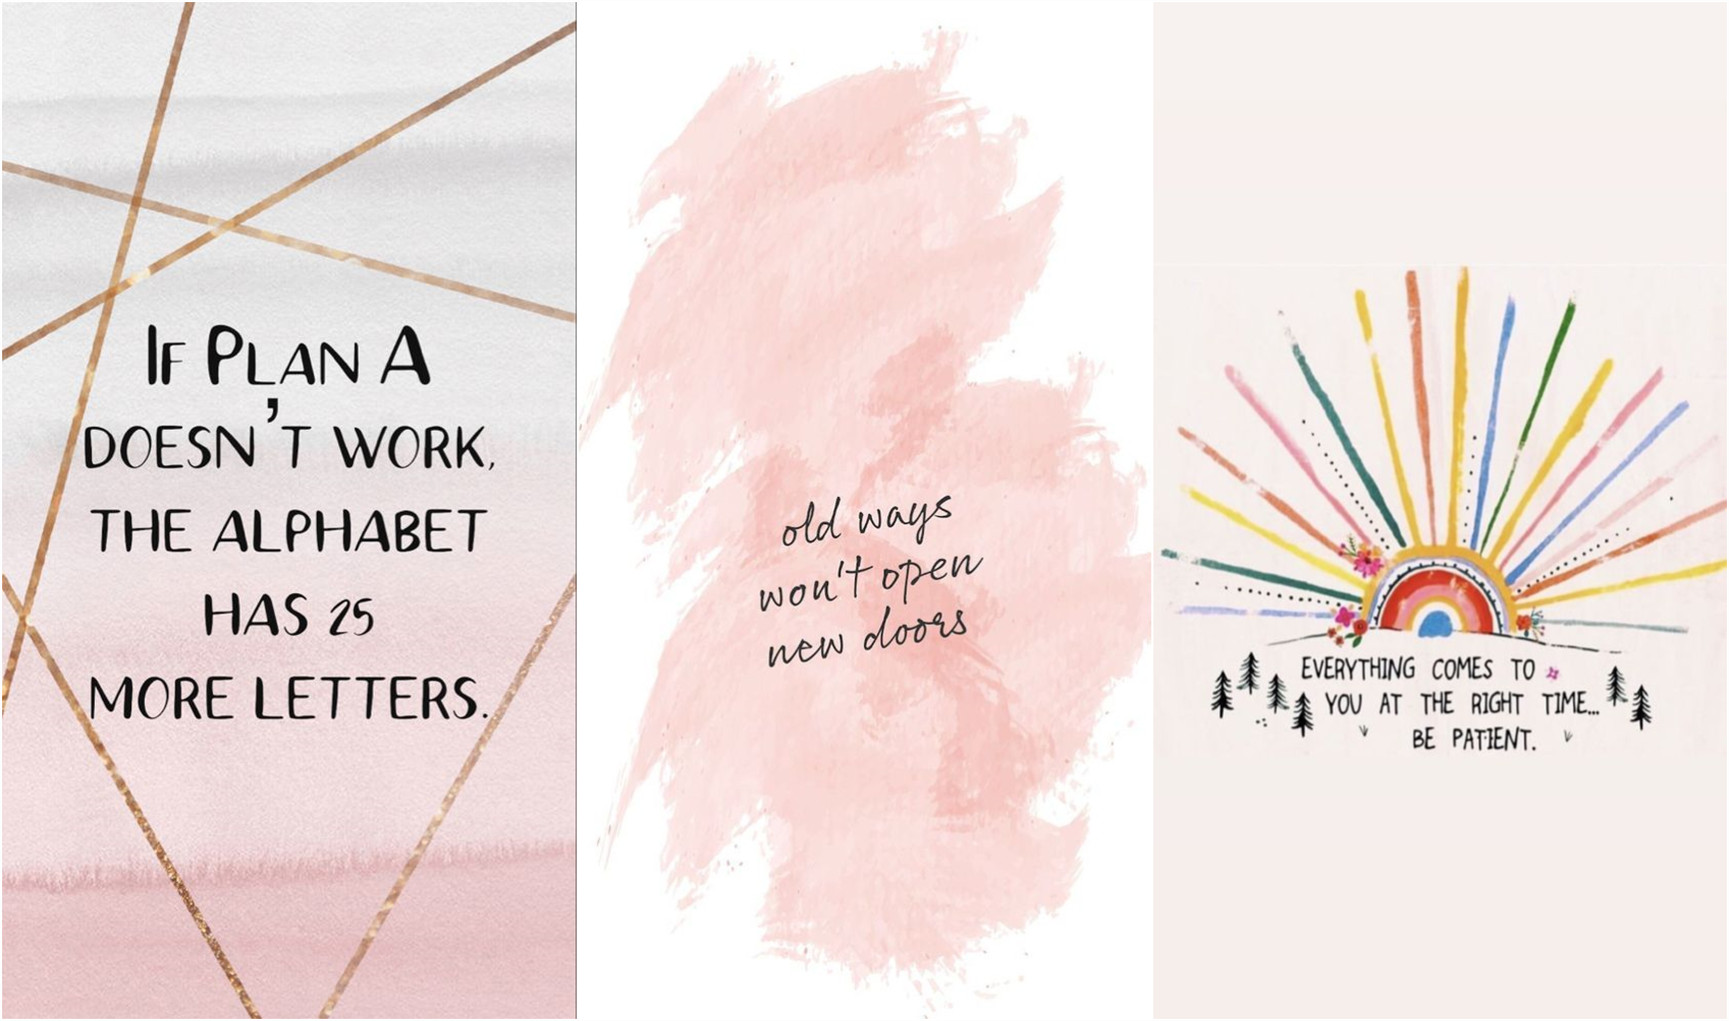 22 Inspirational Iphone Wallpaper Quotes To Embrace Fancy Ideas About Everything